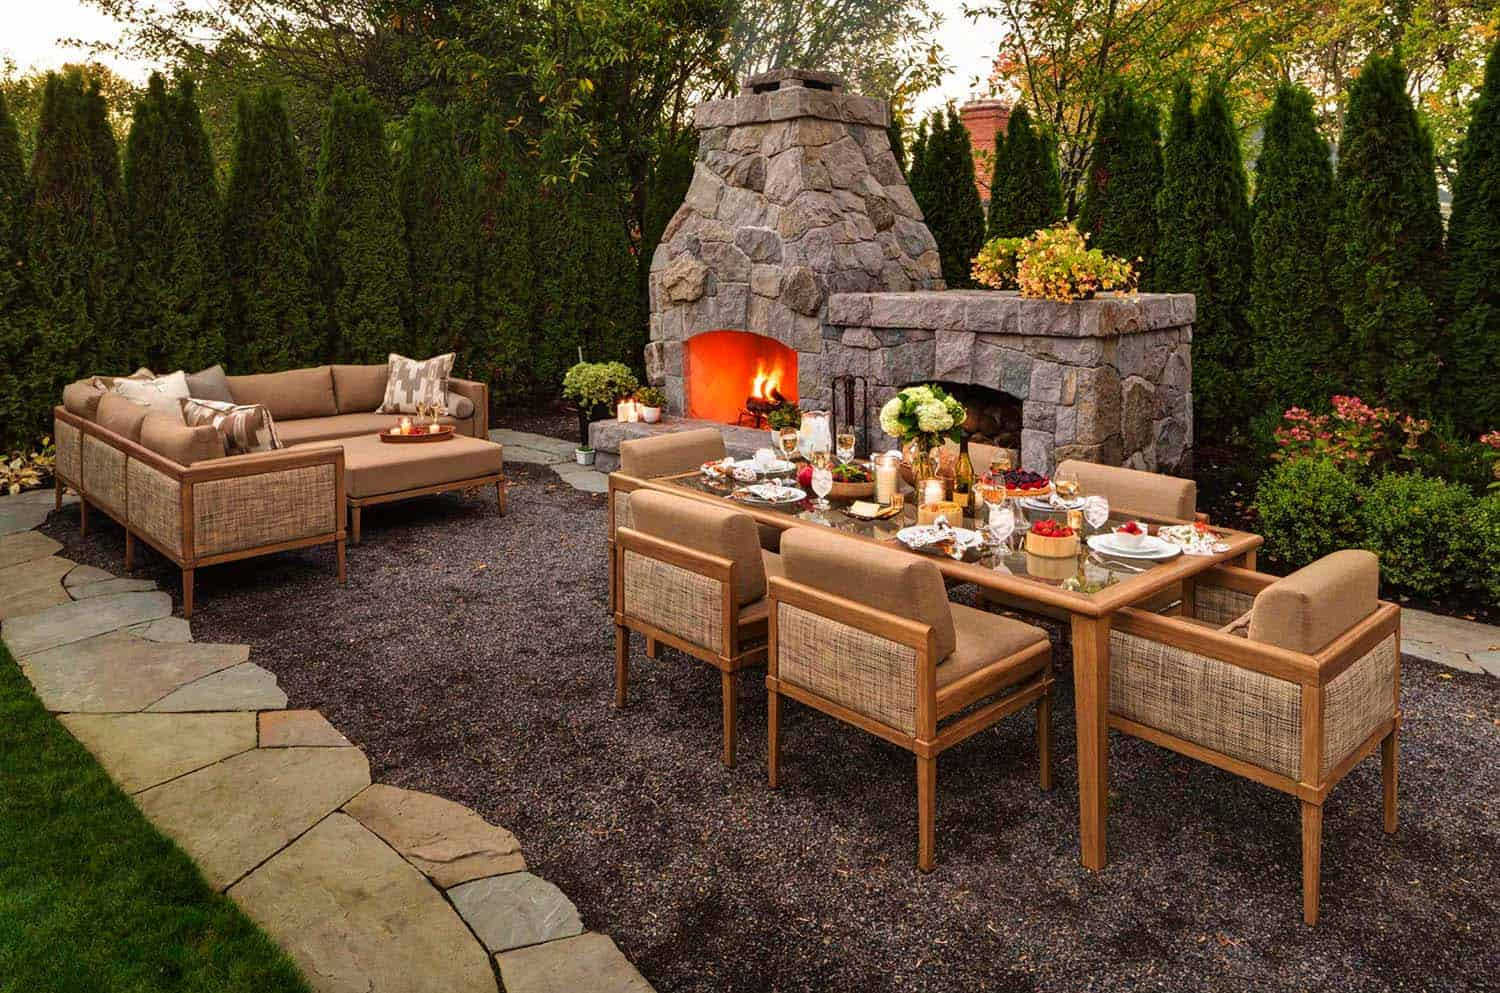 25 Fabulous Outdoor Patio Ideas To Get Ready For Spring Enjoyment